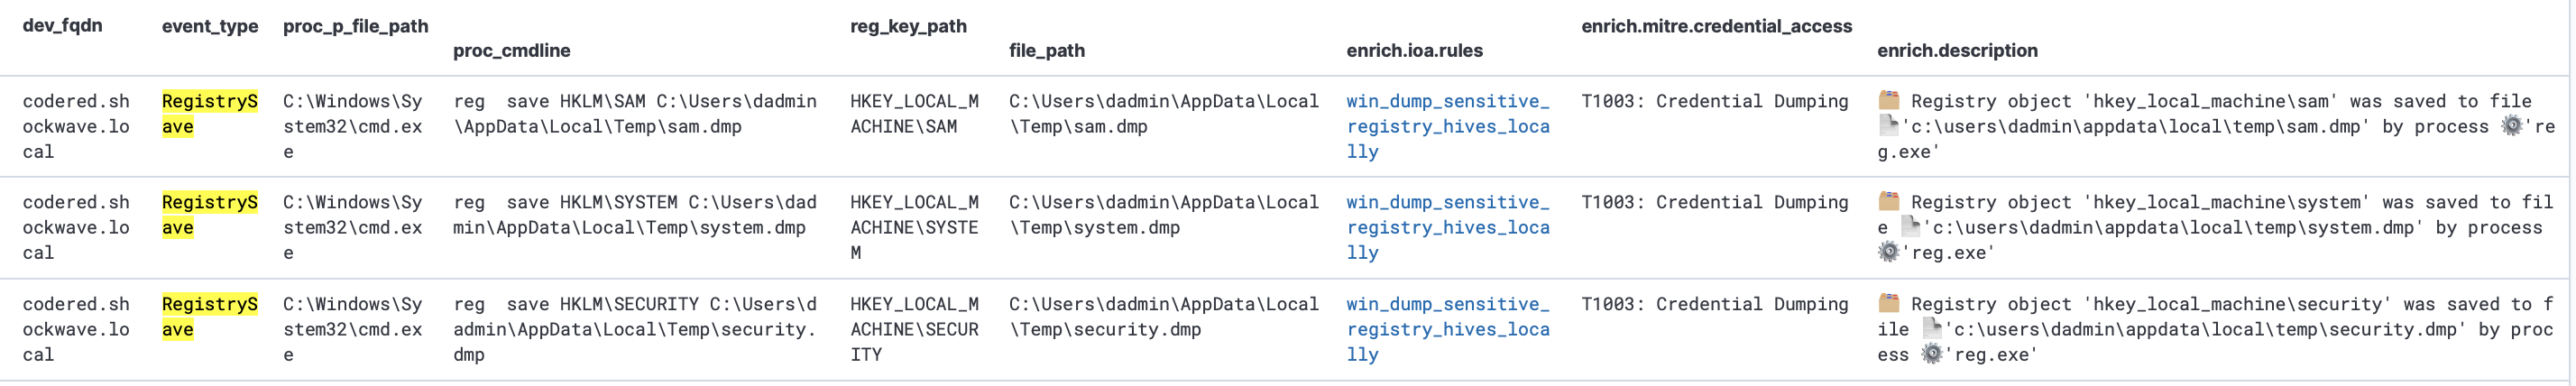 Fig. 22. Detection (using EDR events) of attempts to dump Registry hives withaccount authentication data